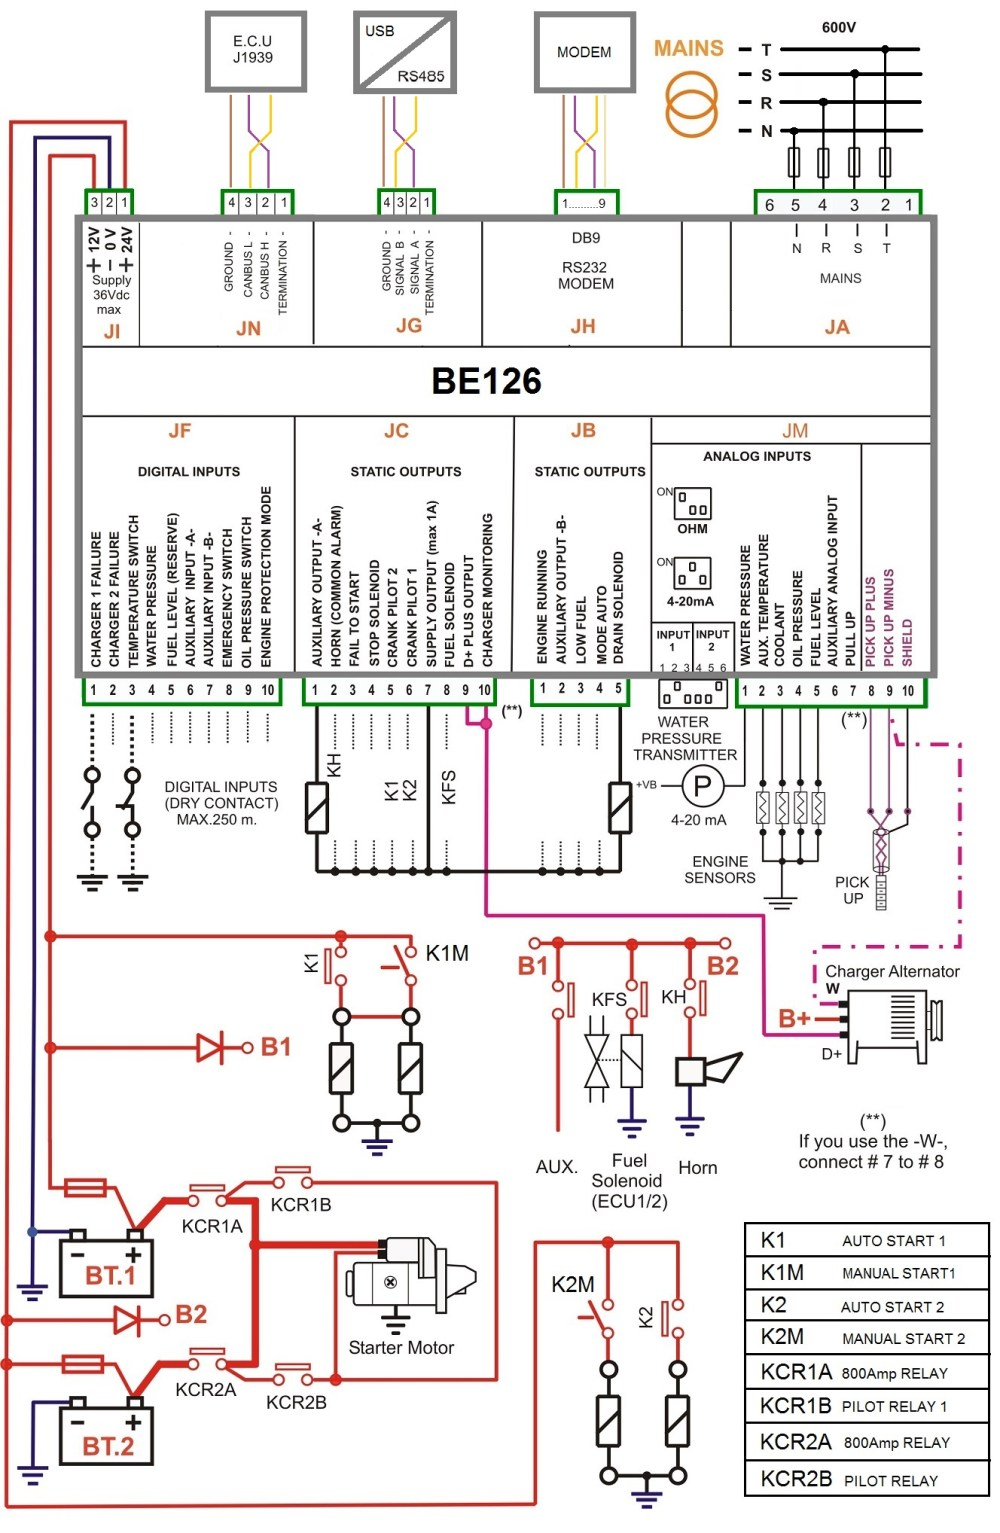 medium resolution of fire pump controller wiring diagram generator controllers pump control panel wiring diagram schematic fire pump controller